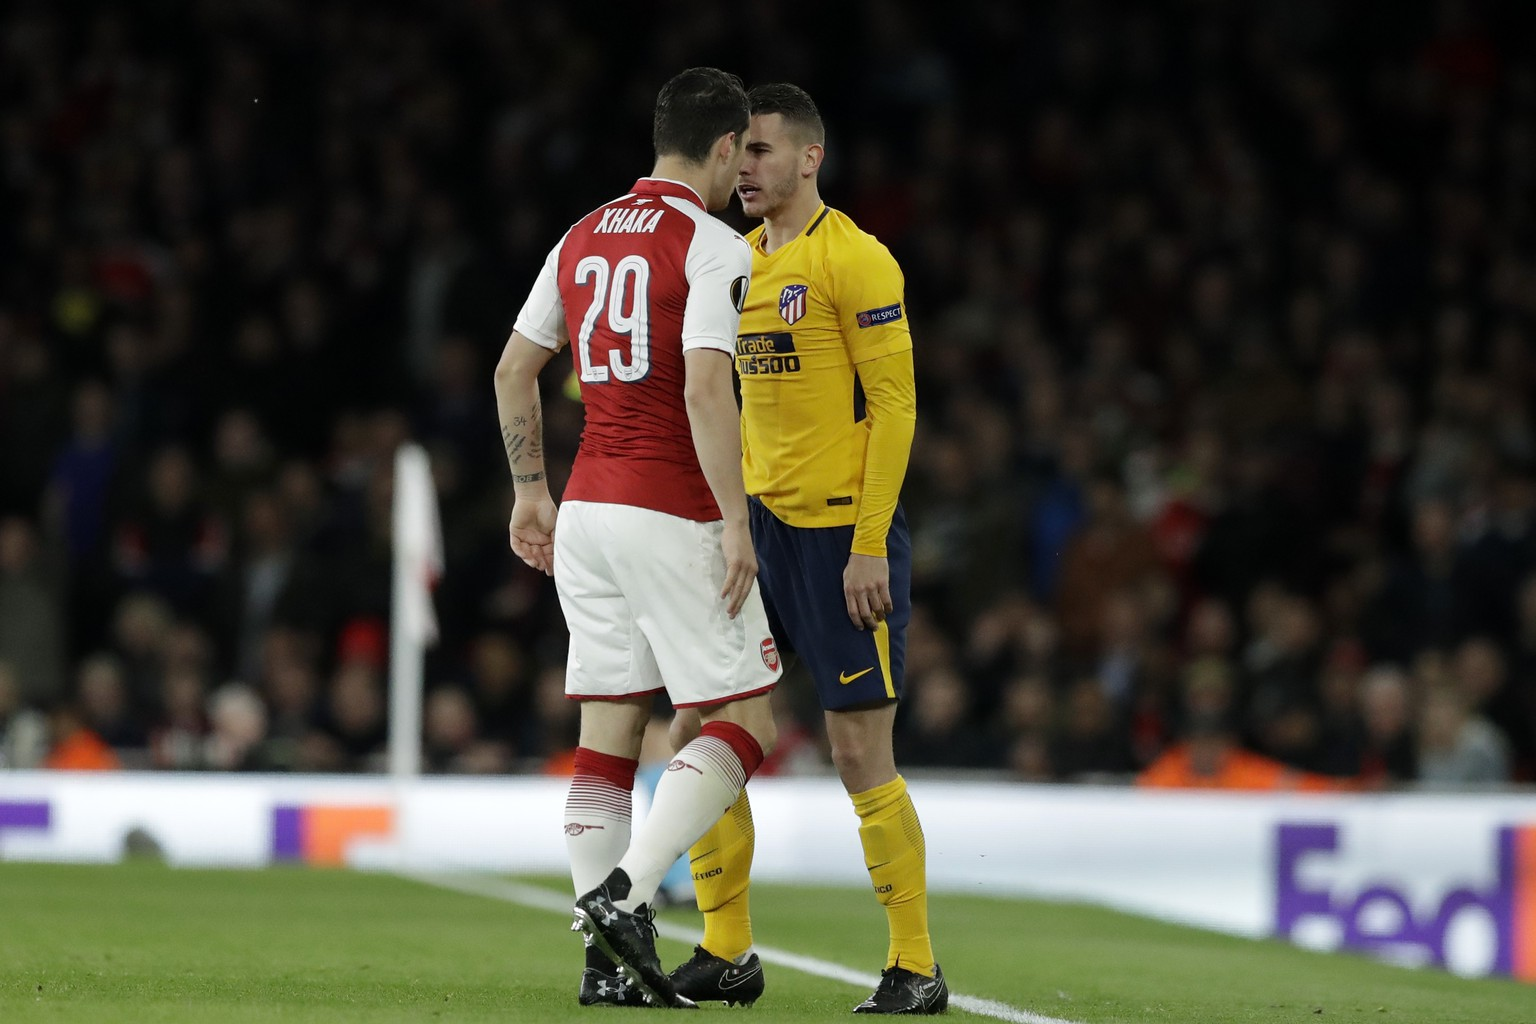 Arsenal's Granit Xhaka, left, argues with Atletico's Lucas Hernandez during the Europa League semifinal first leg soccer match between Arsenal FC and Atletico Madrid at Emirates Stadium in London, Thursday, April 26, 2018. (AP Photo/Matt Dunham)